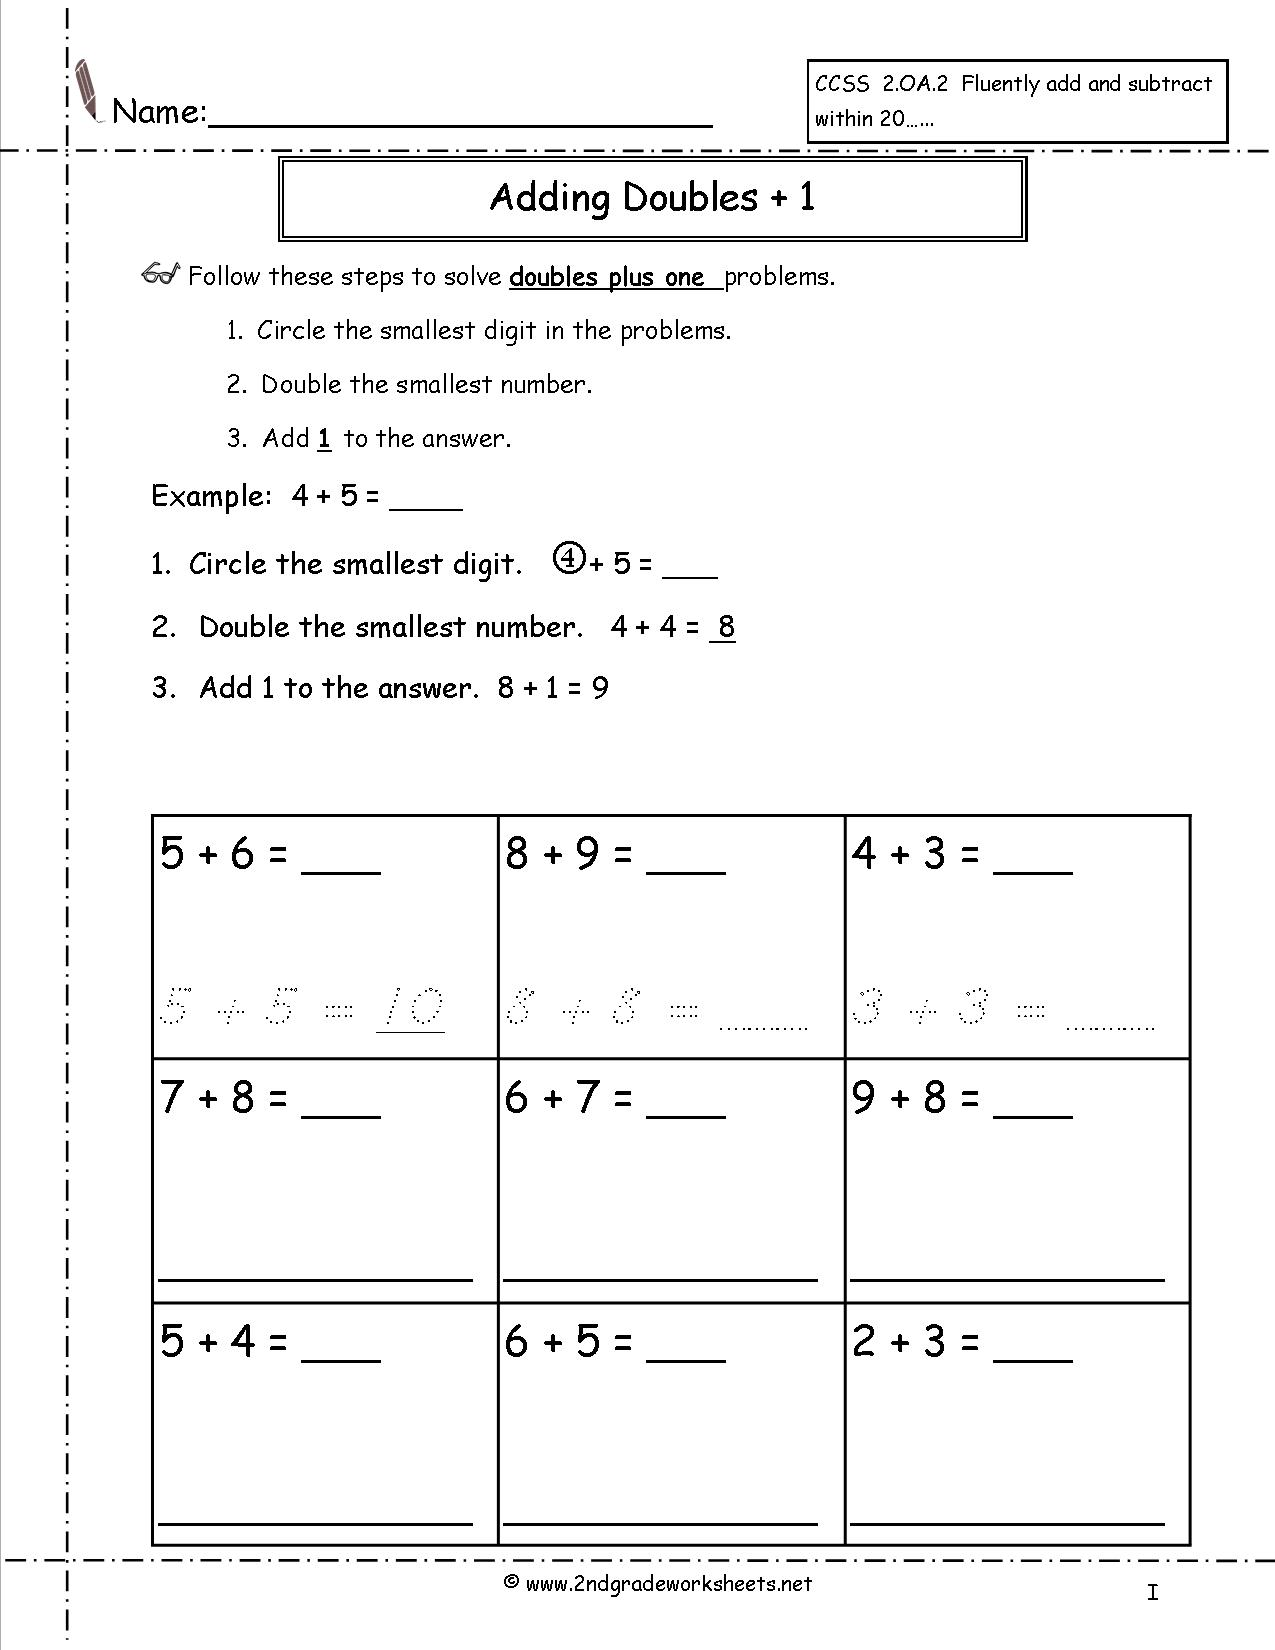 15 Best Images Of Plus 1 Addition Worksheets